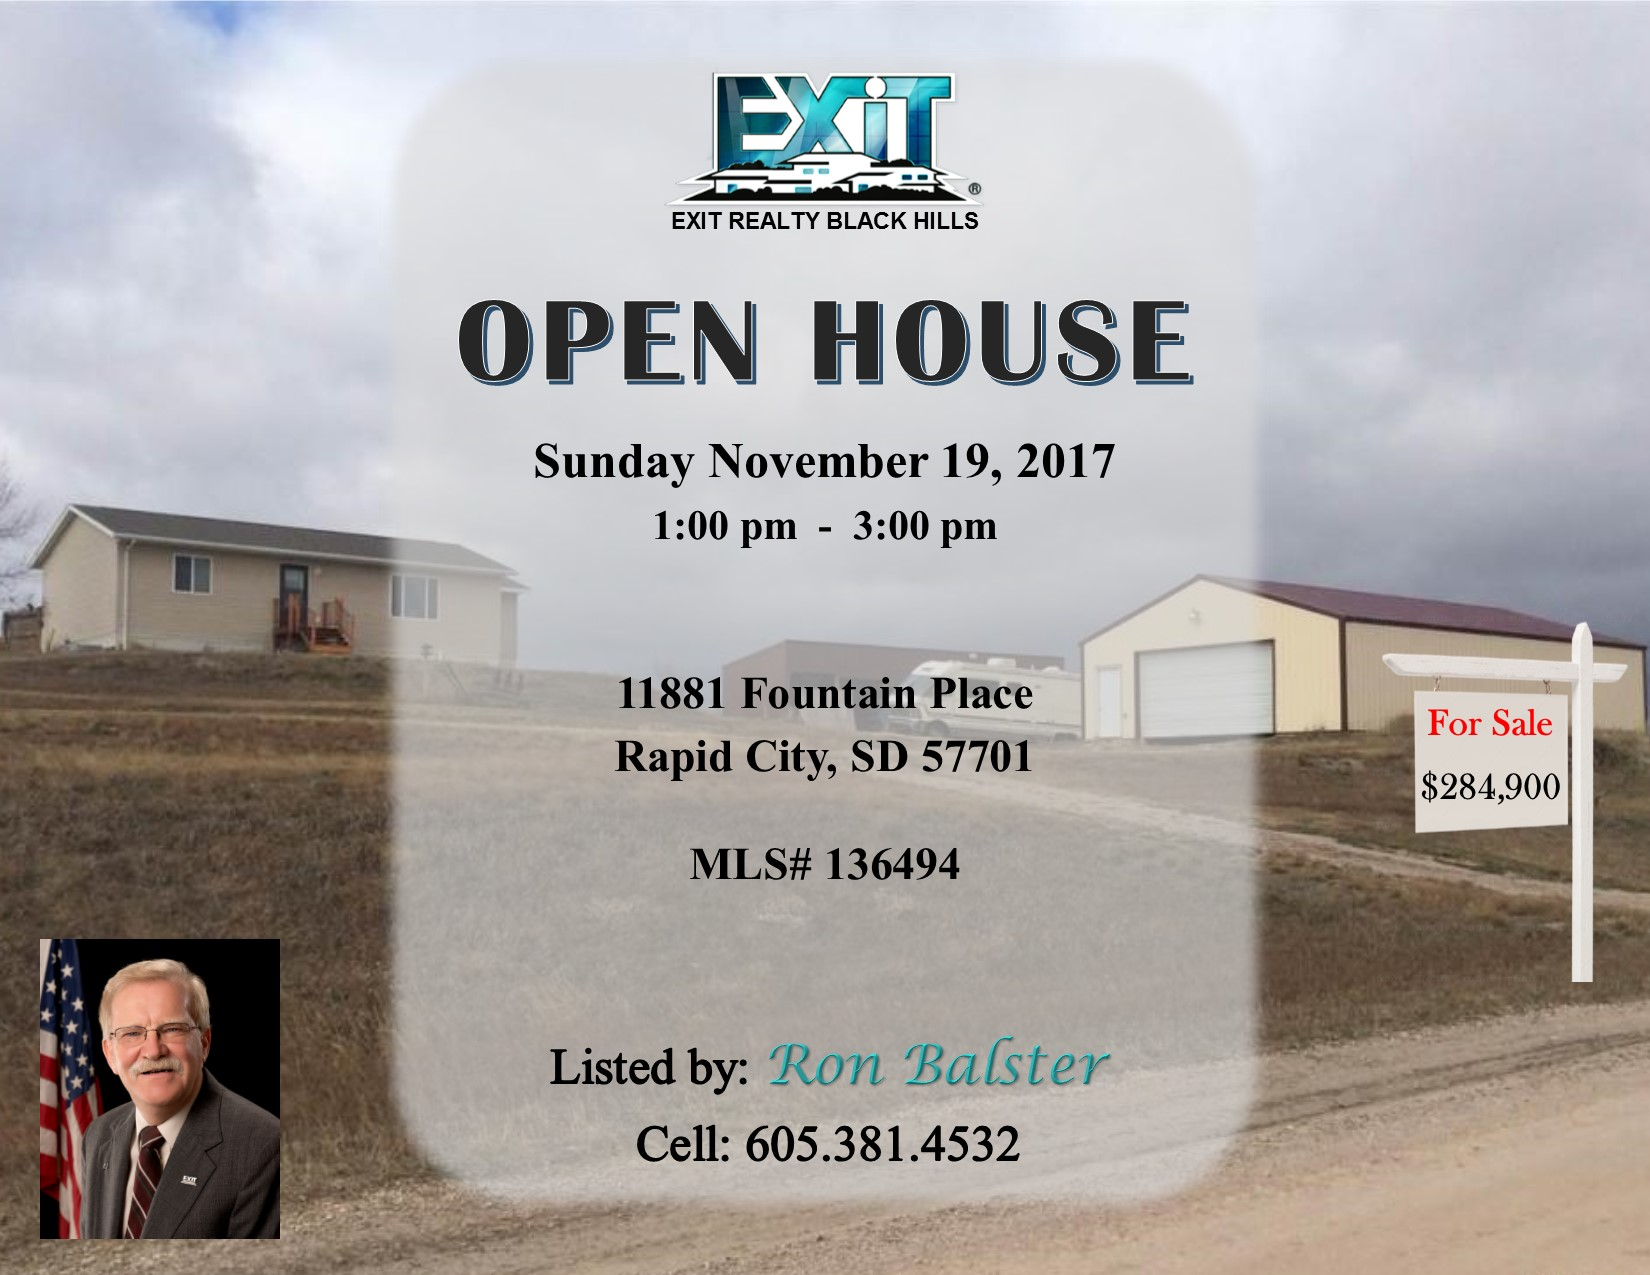 Open House Sunday November 19, 2017